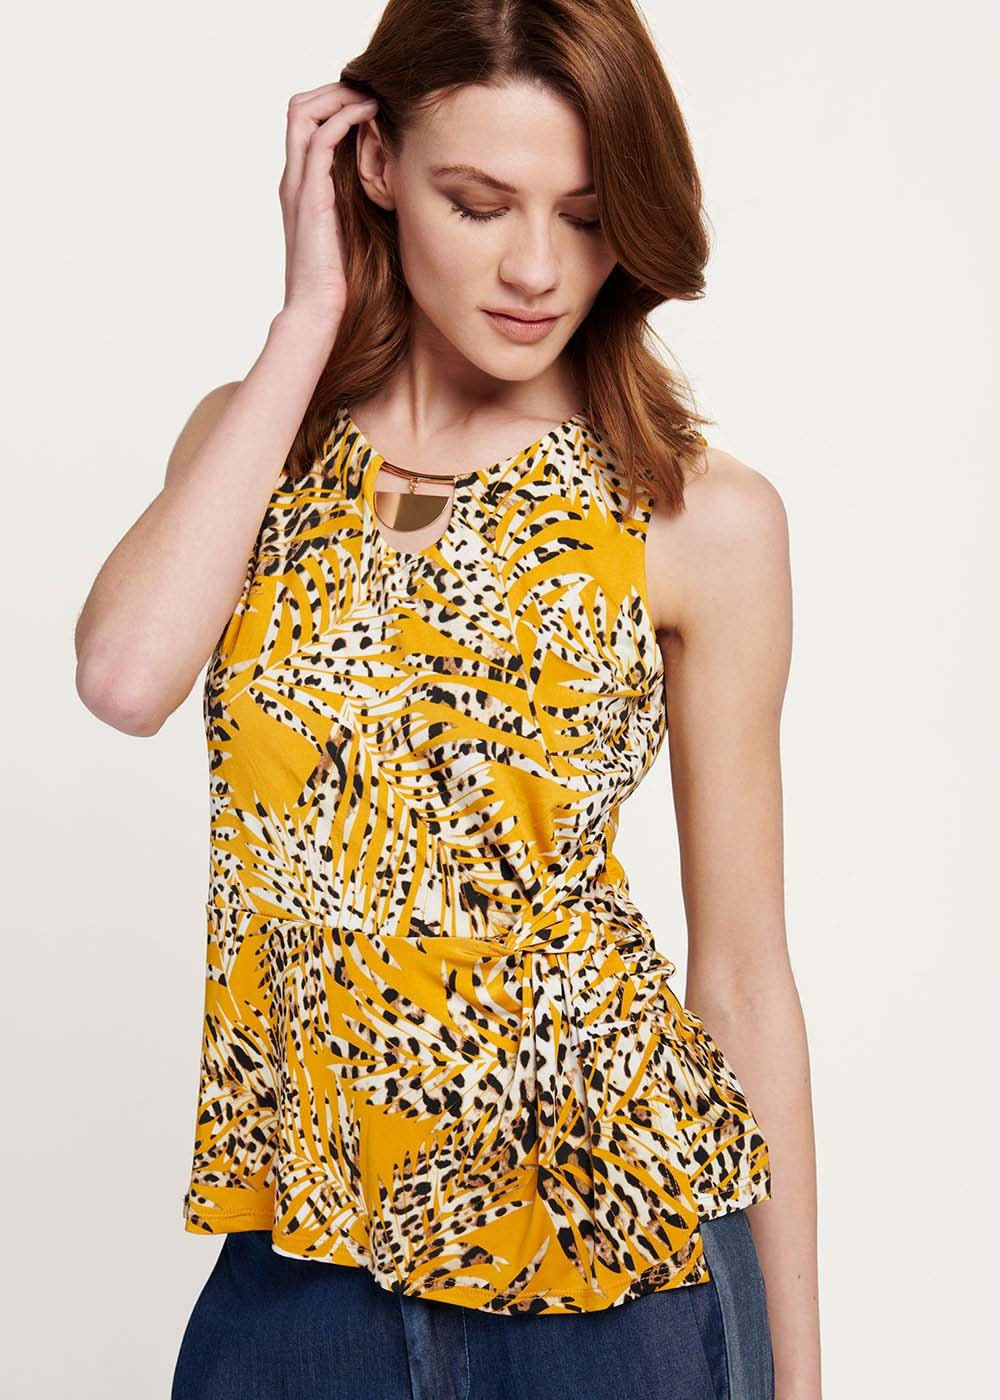 Top Terrie stampa animalier - Curcuma / White /  Animalier - Donna